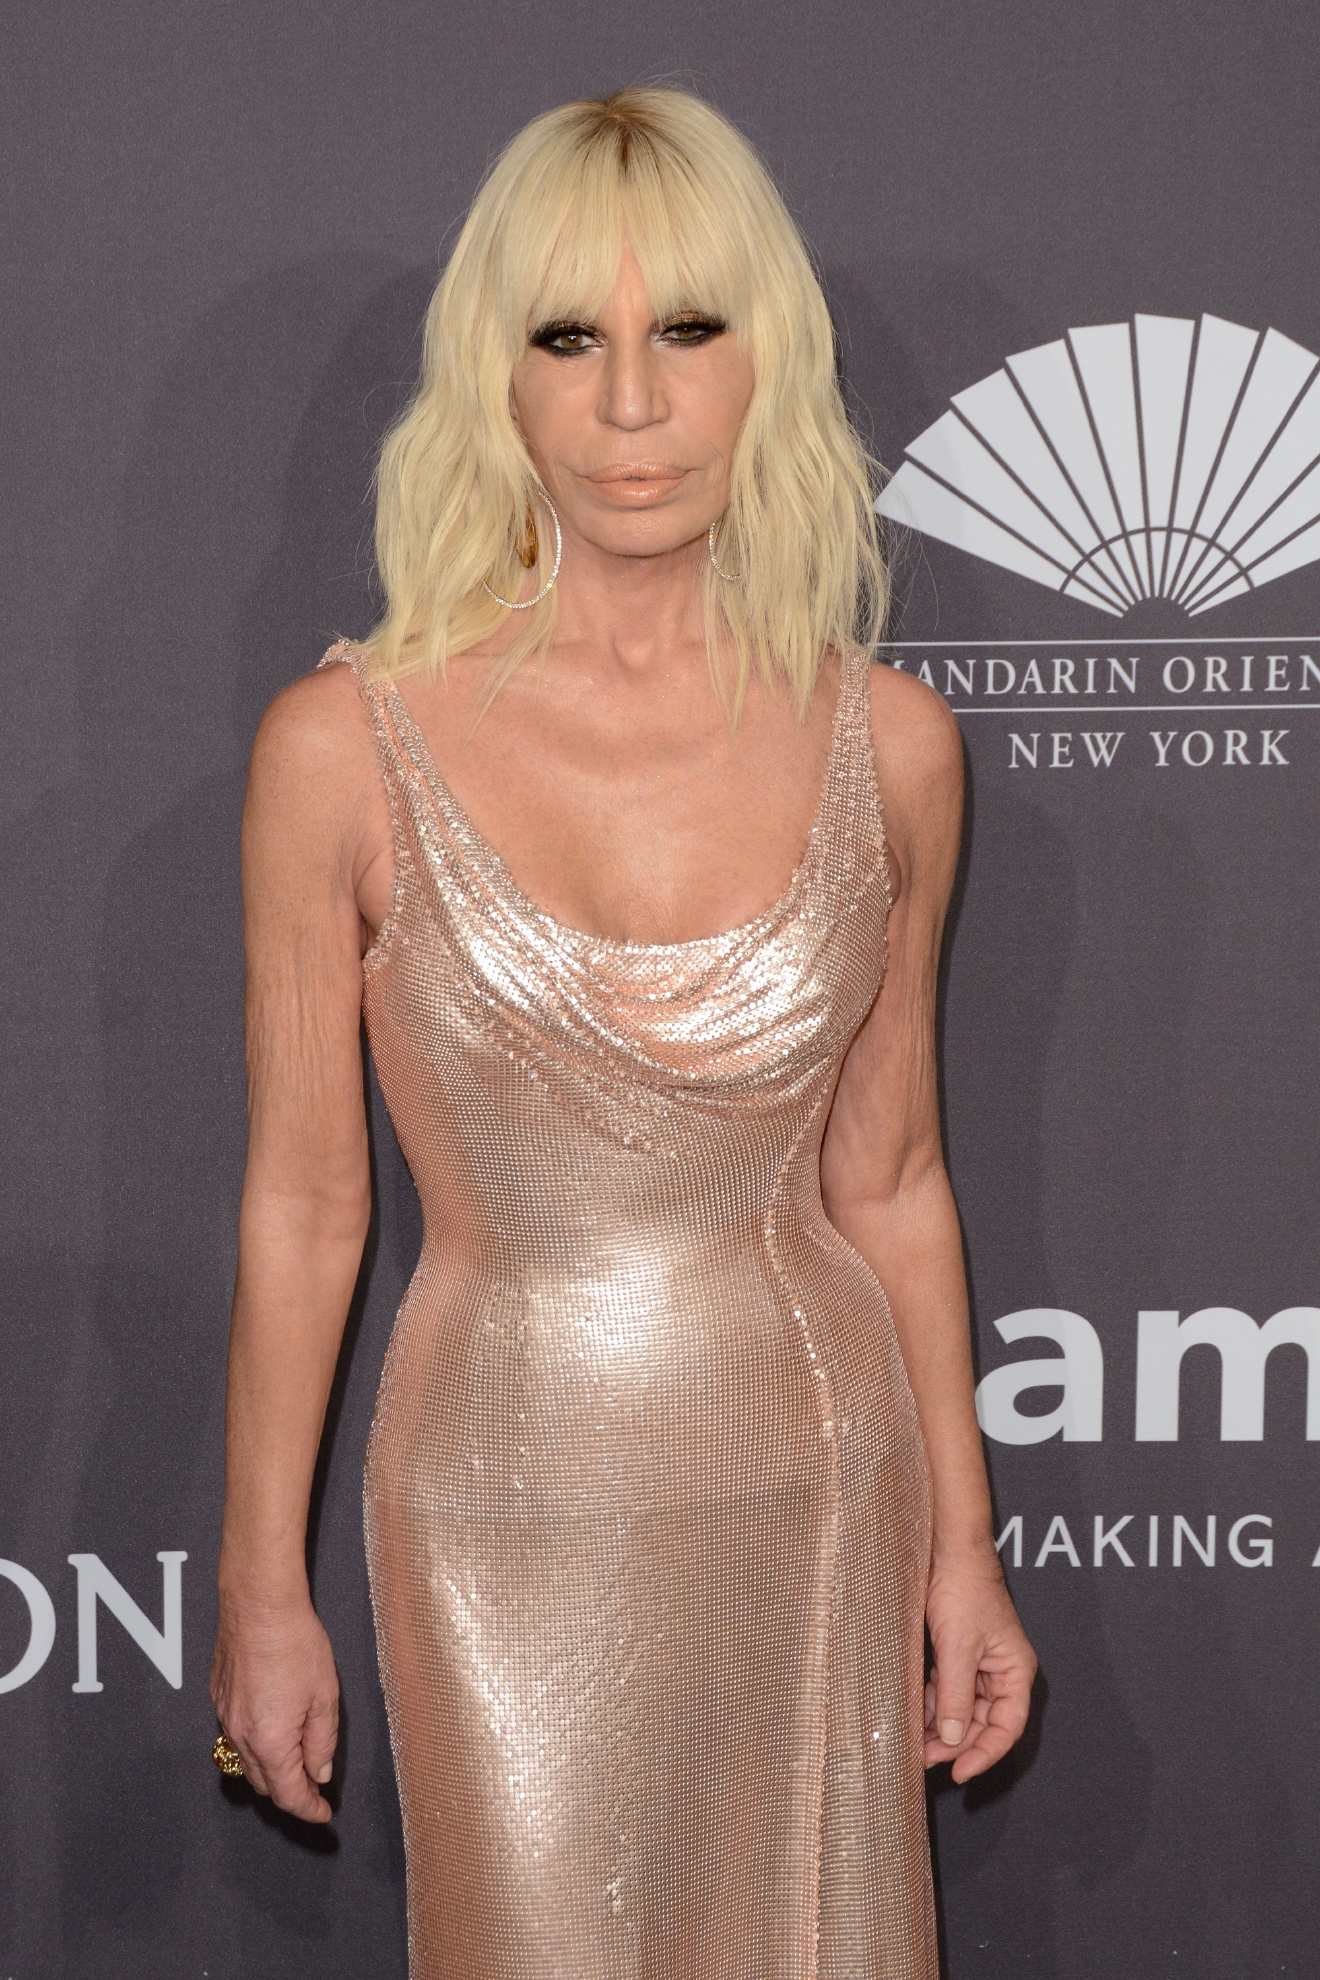 amfAR New York 2017 Gala at Cipriani Wall Street - Red Carpet Arrivals                                    Featuring: Donatella Versace                  Where: New York, New York, United States                  When: 09 Feb 2017                  Credit: Ivan Nikolov/WENN.com